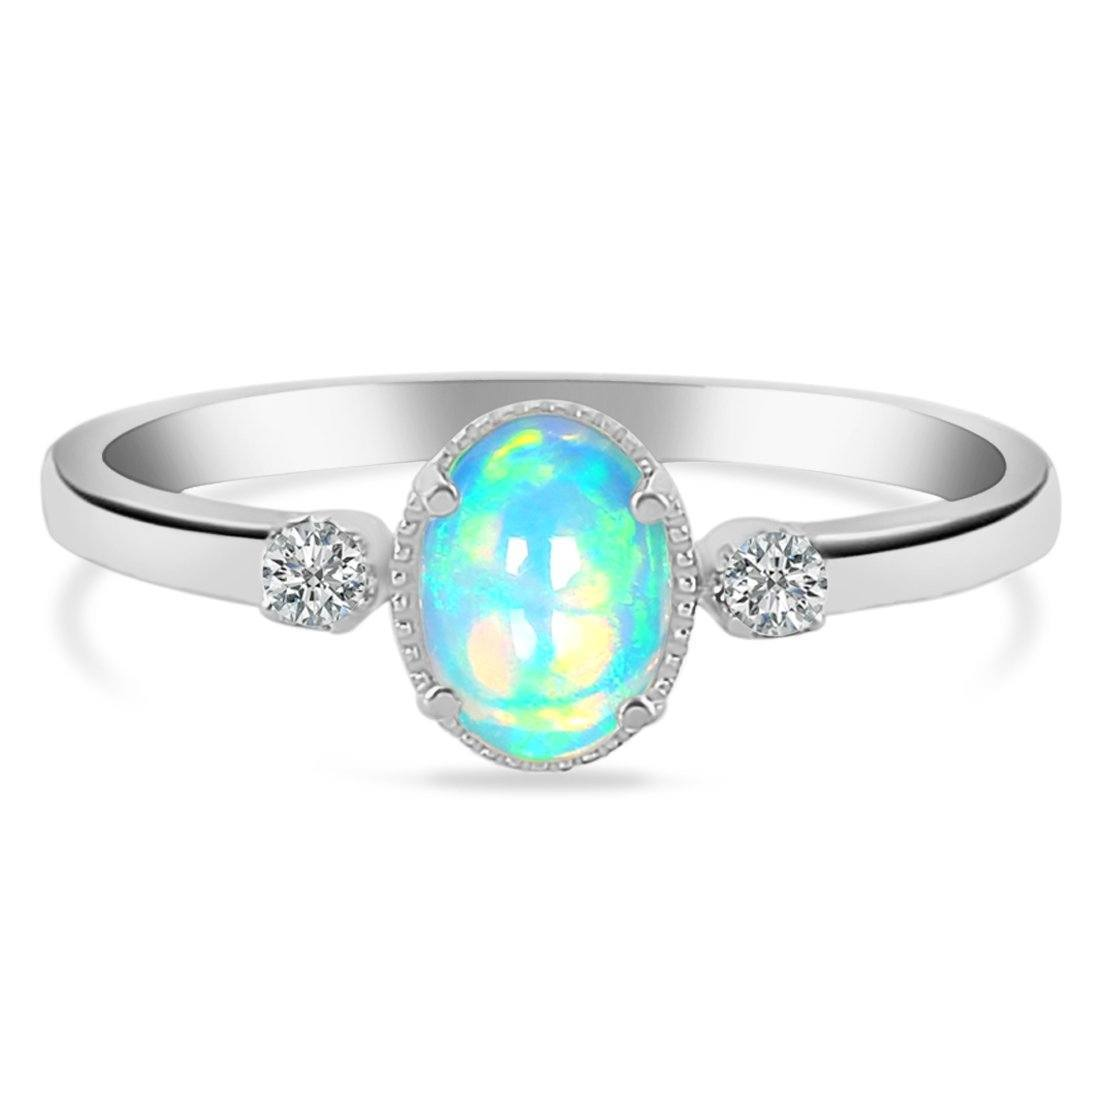 925 STERLING SILVER Opal Ring-Spirit Silver Opal Ring 925 SILVER & GENUINE OPAL 5 Oval-7x5 mm Round-2 mm Silver